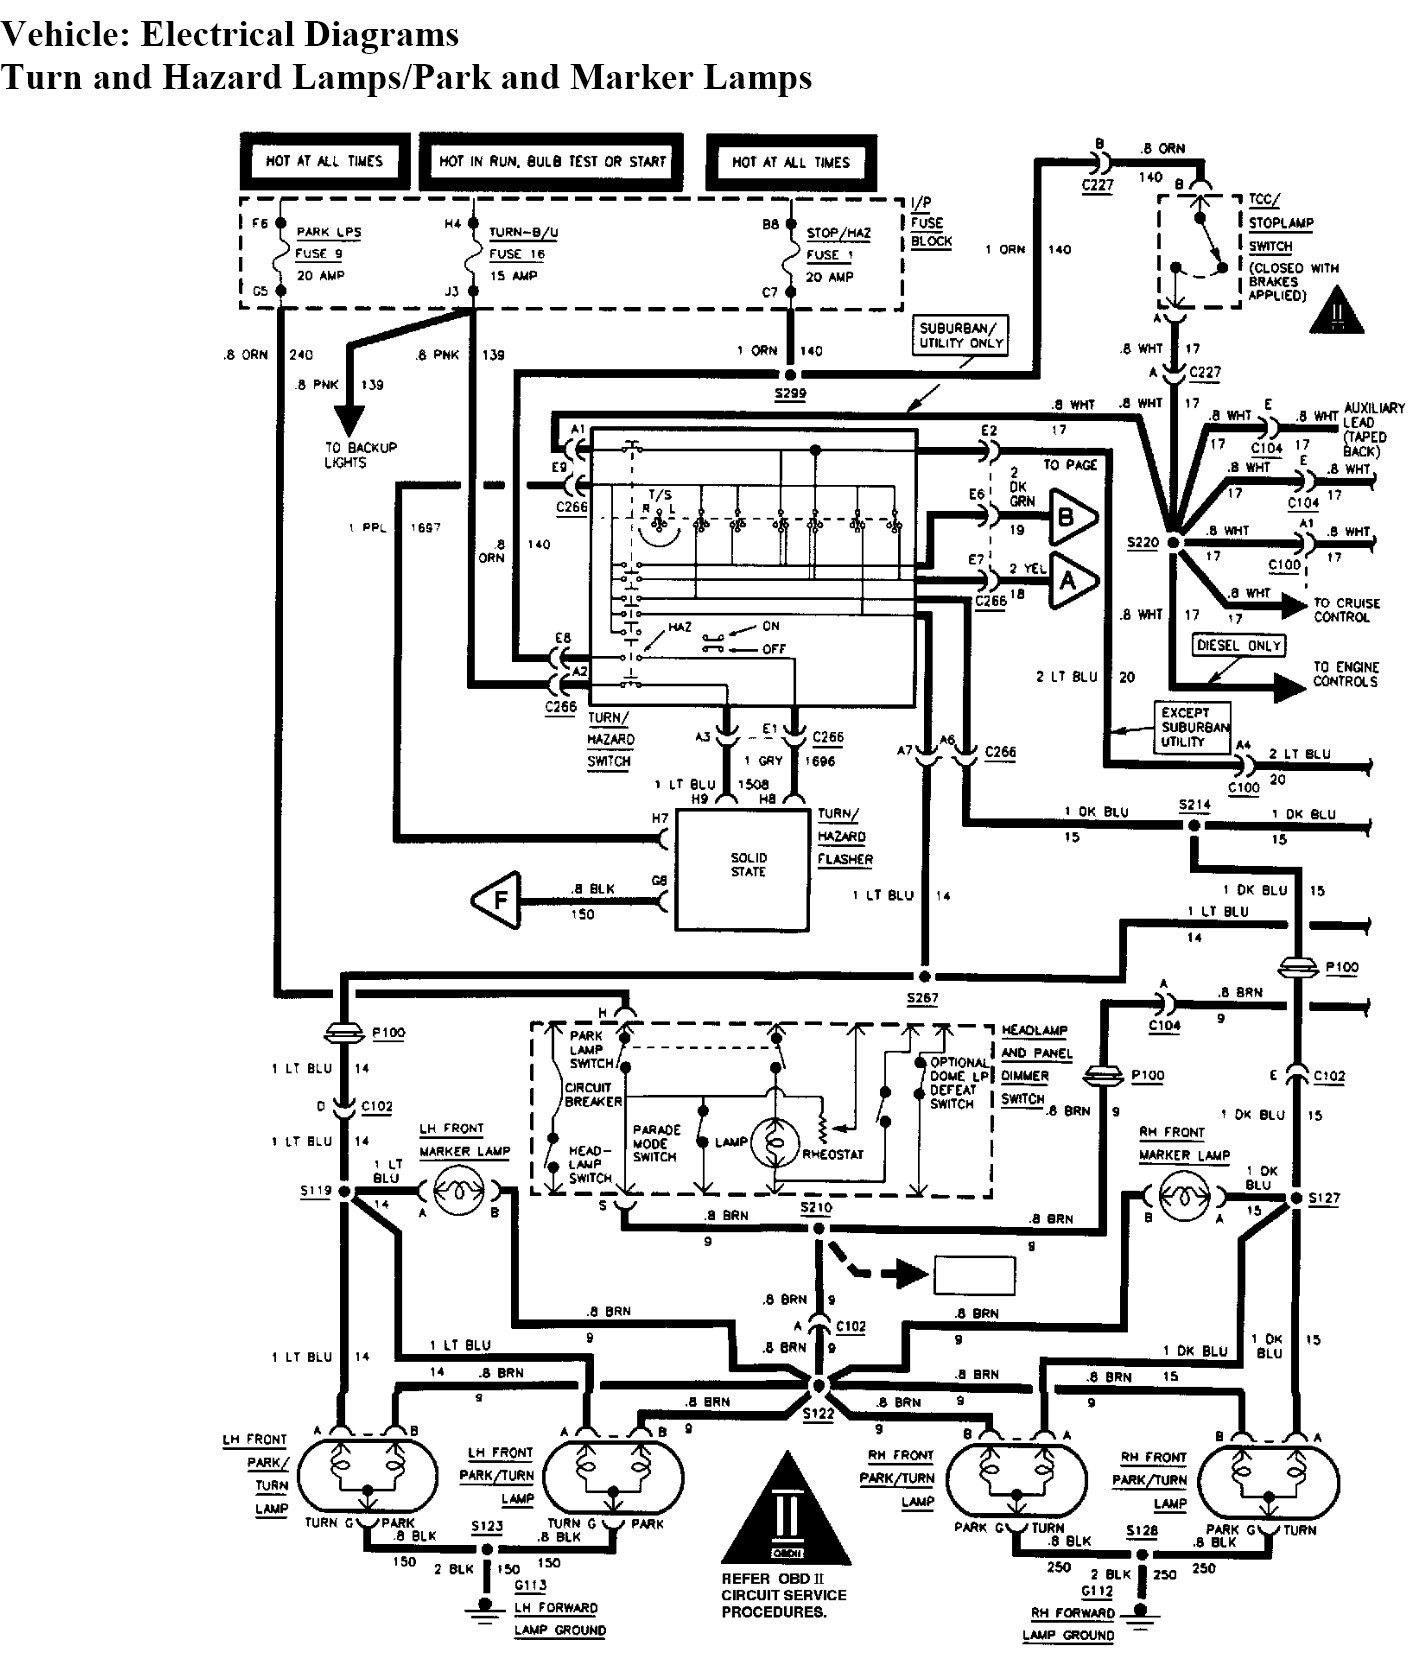 2007 Dodge Ram 1500 Brake Light Wiring Diagram